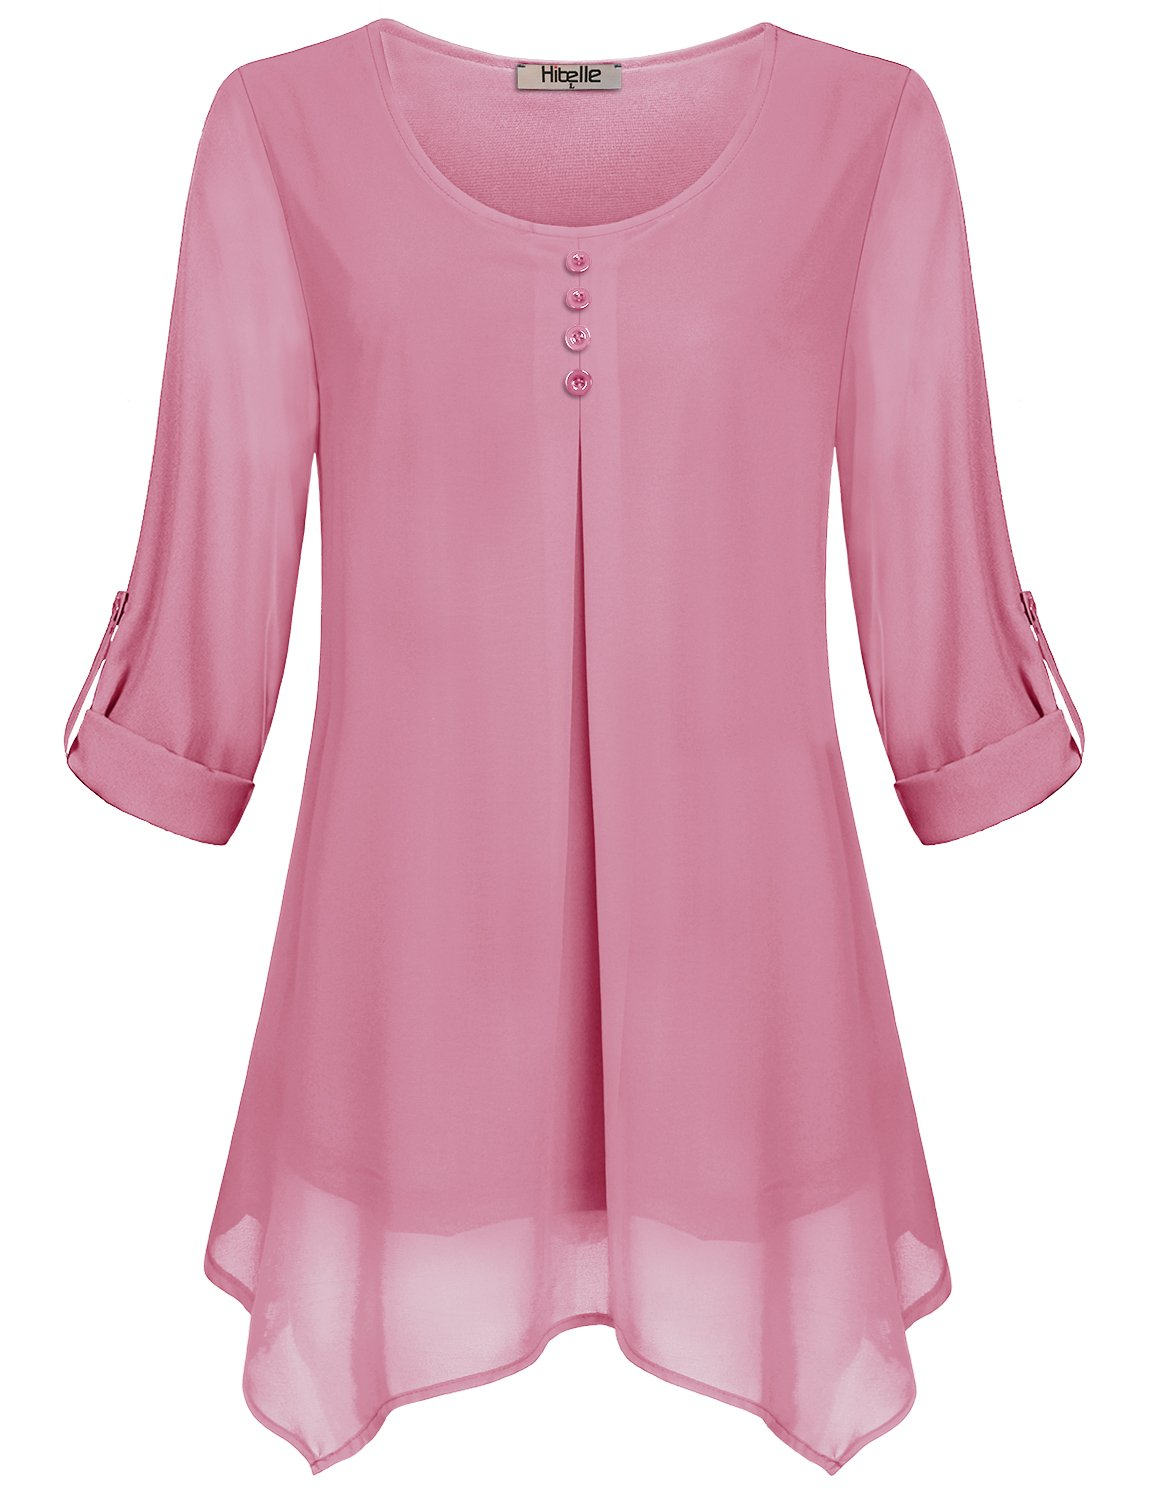 Hibelle Layered Shirts for Women, Ladies Dressy Blouses Business Casual Tops Flowy Flattering Chiffon Tunics Cuffed Sleeve Roll up Going Out Summer Clothing Fashion 2018 Pink 2XL